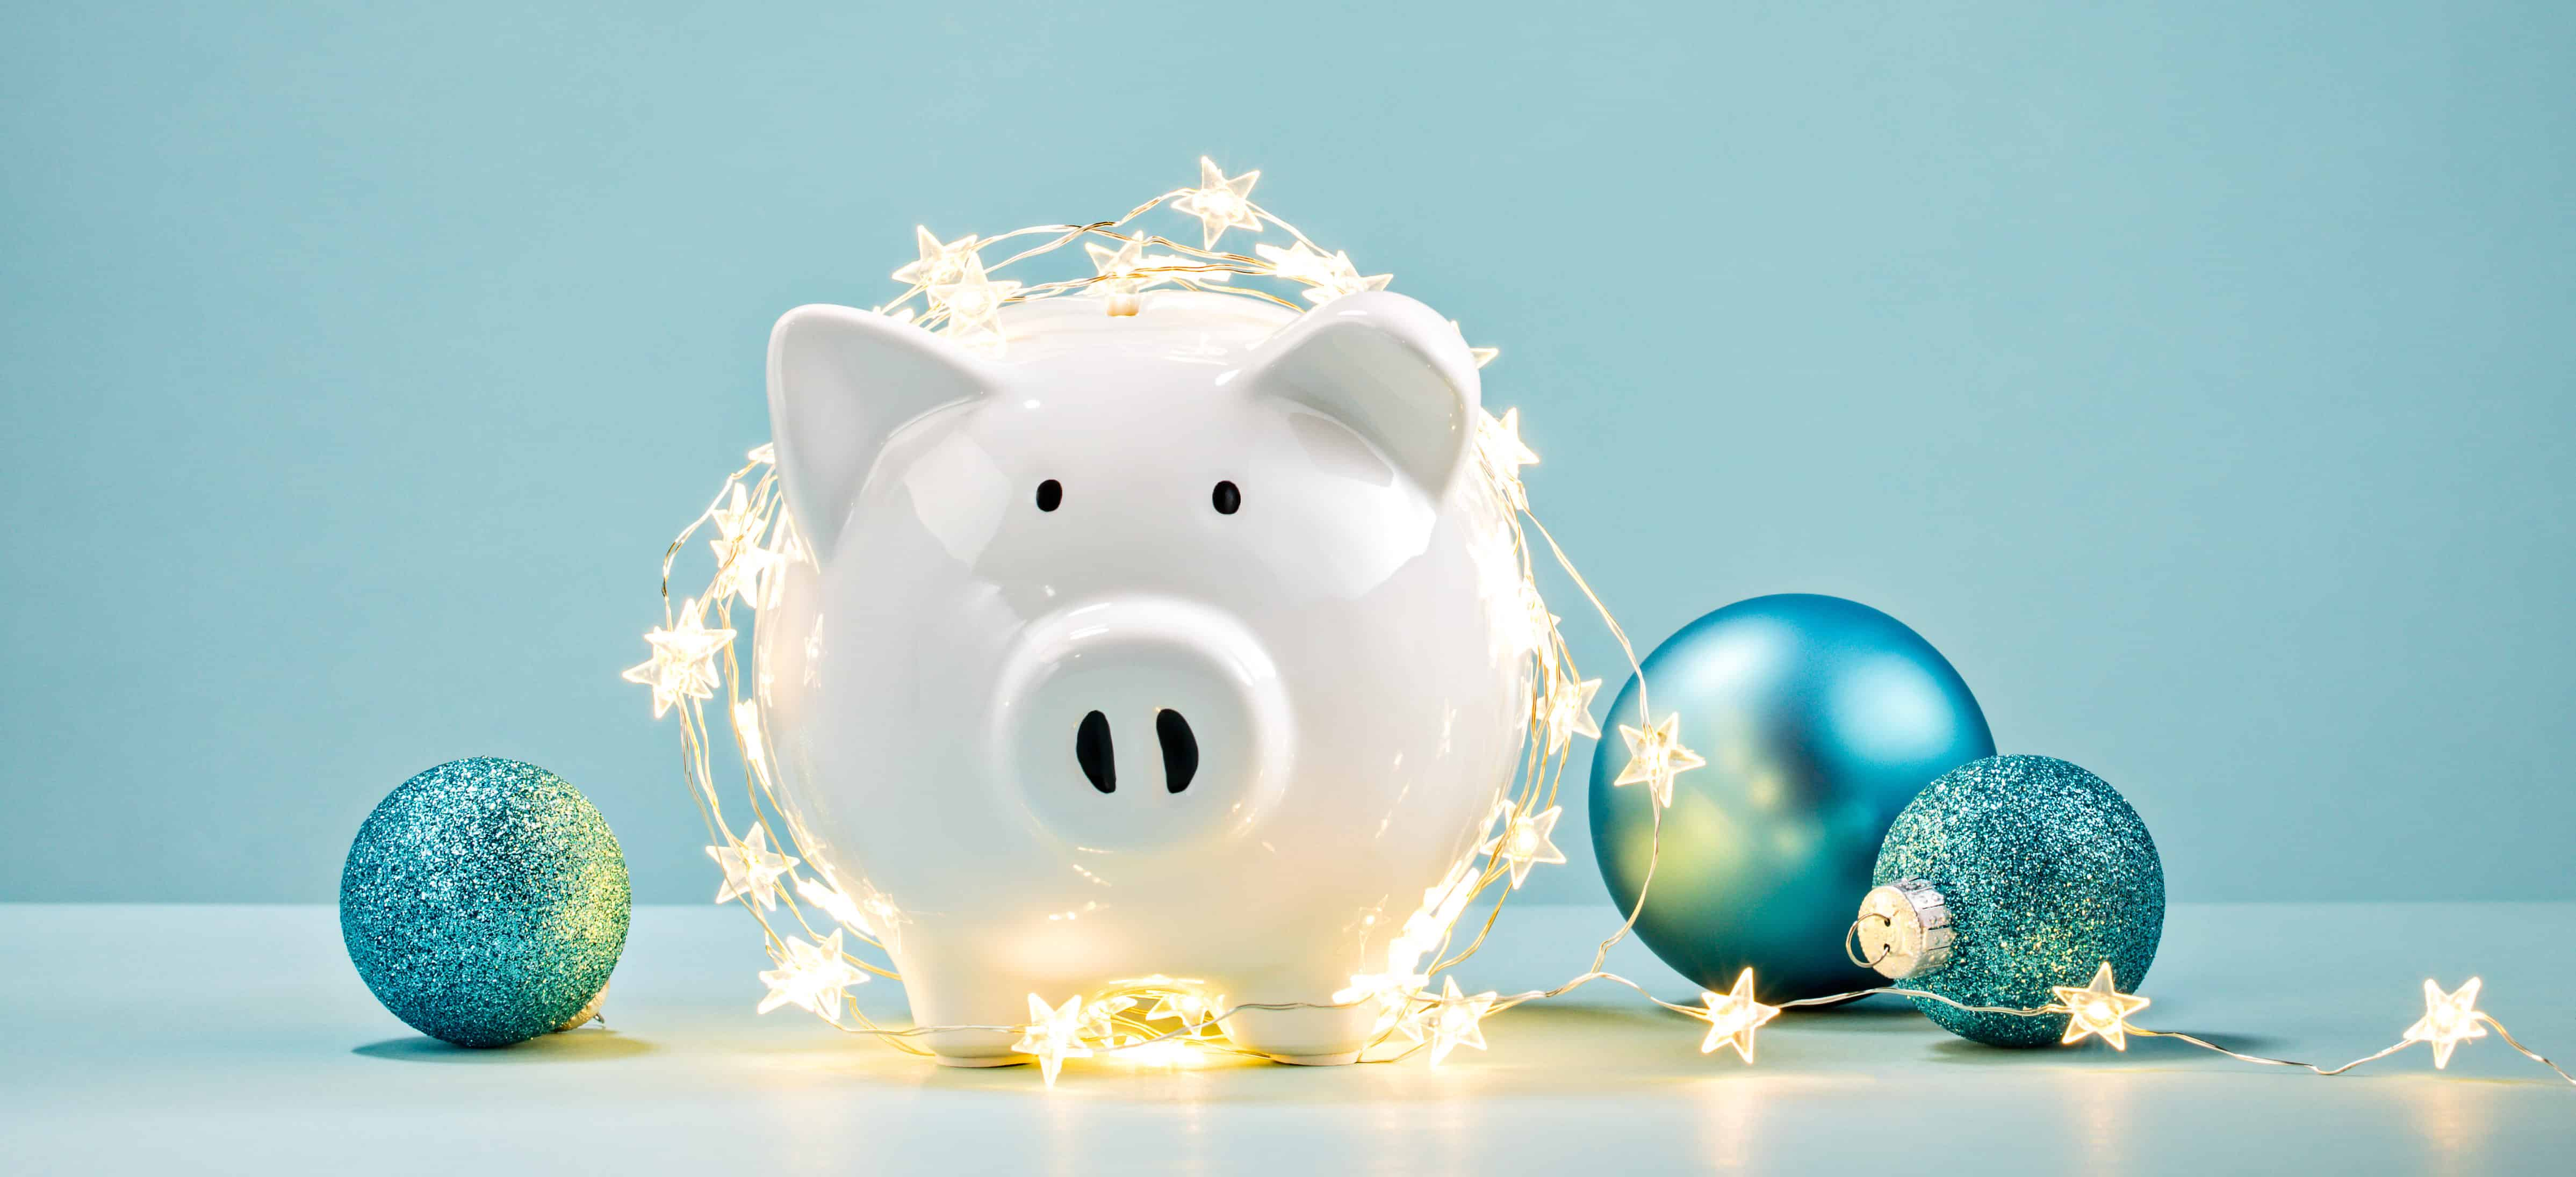 Piggy bank wrapped in a string of Christmas lights